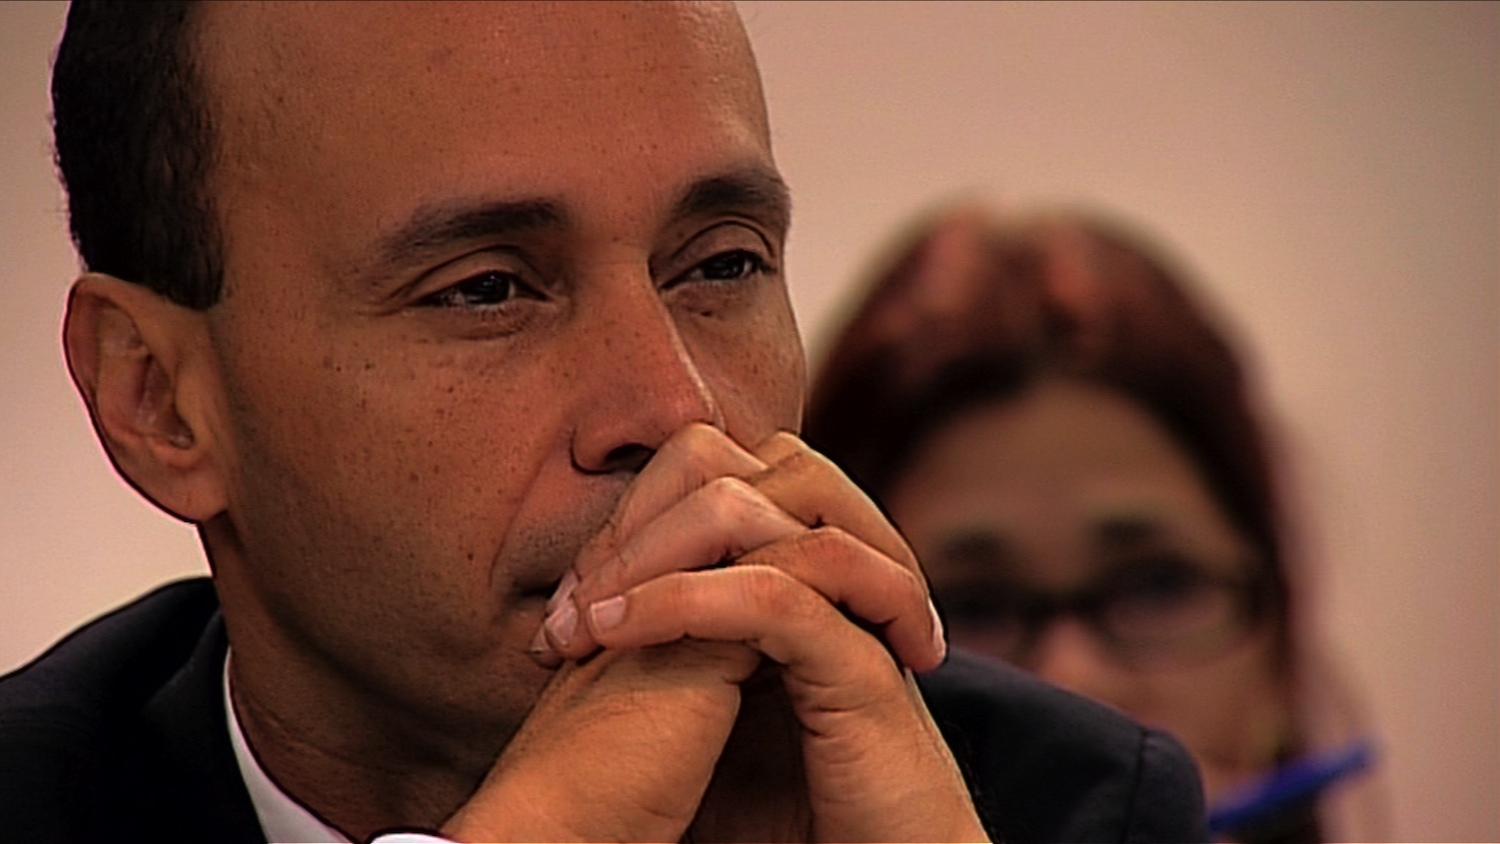 06_DREAM_HD_STILL_Luis Gutierrez CU 01a.jpg